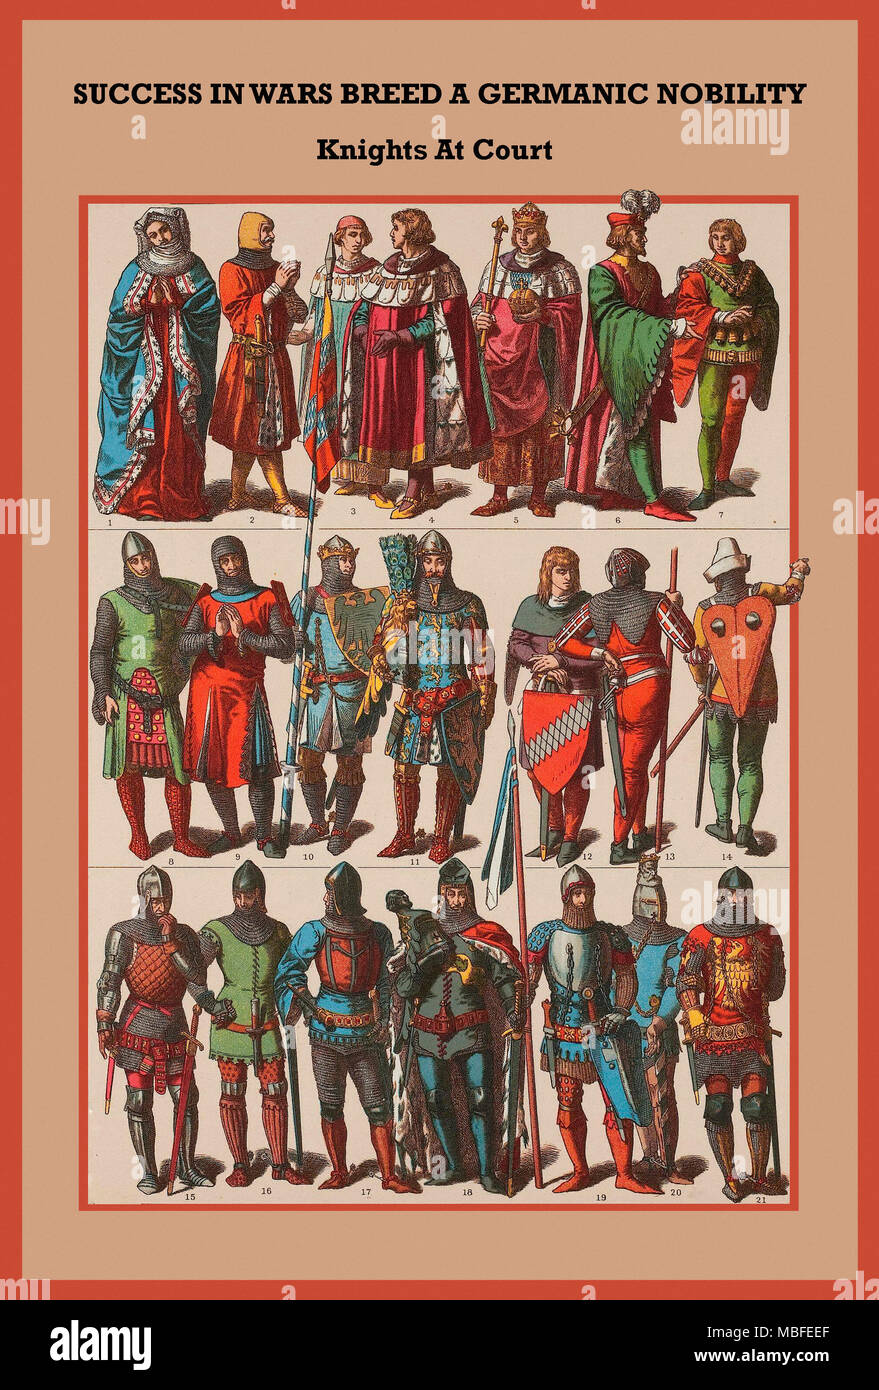 Germanic Nobility & knights at court - Stock Image